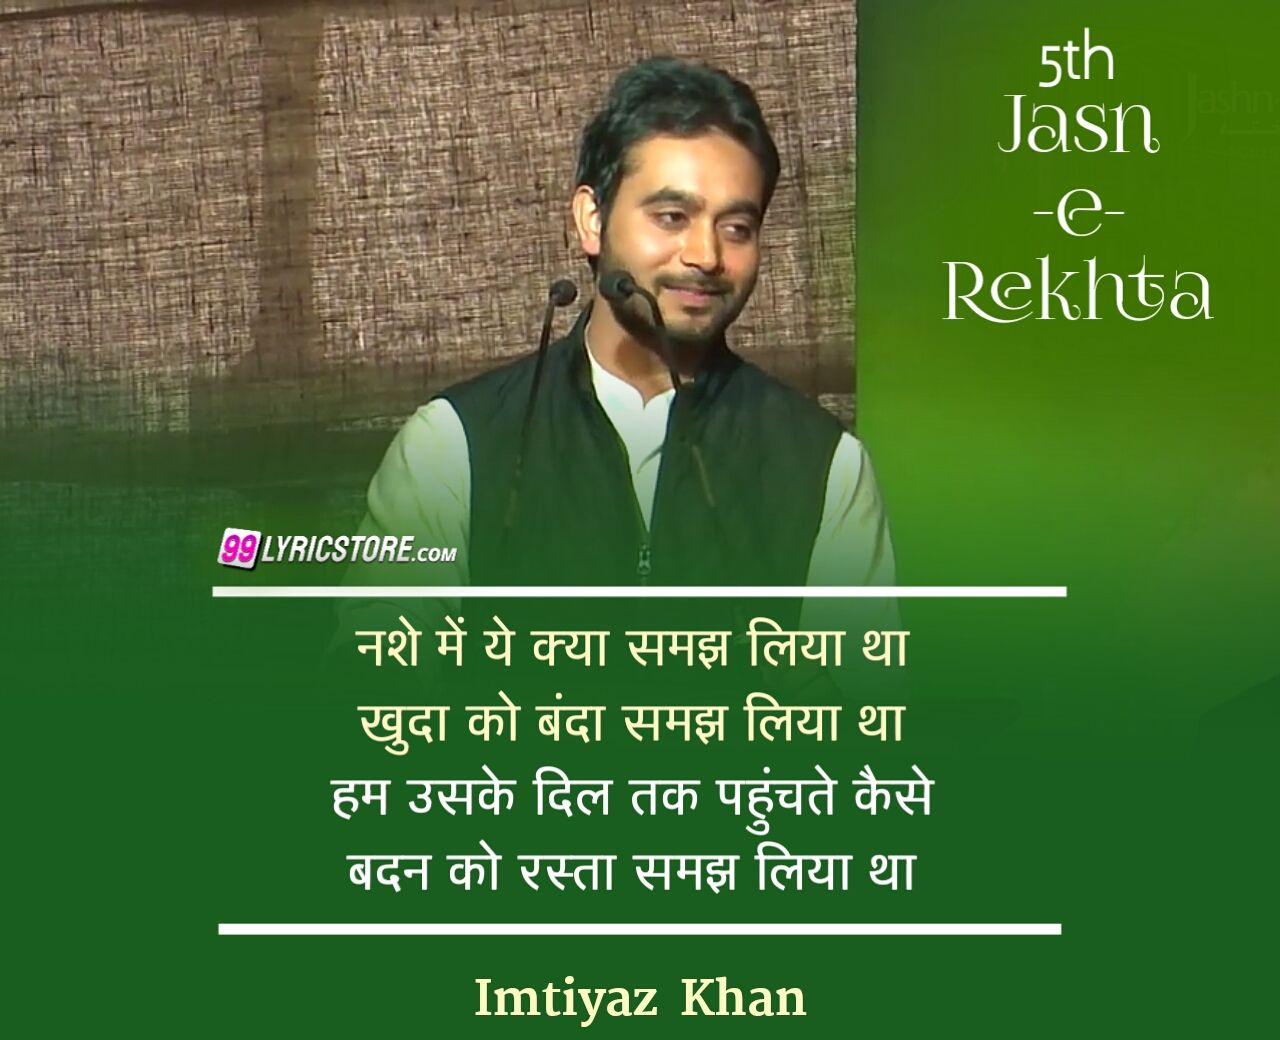 This Beautiful Poetry 'Pehla Kisi Ka Ishq Tha' has written and performed by Imtiyaz Khan at 5th Jashn-e-Rekhta